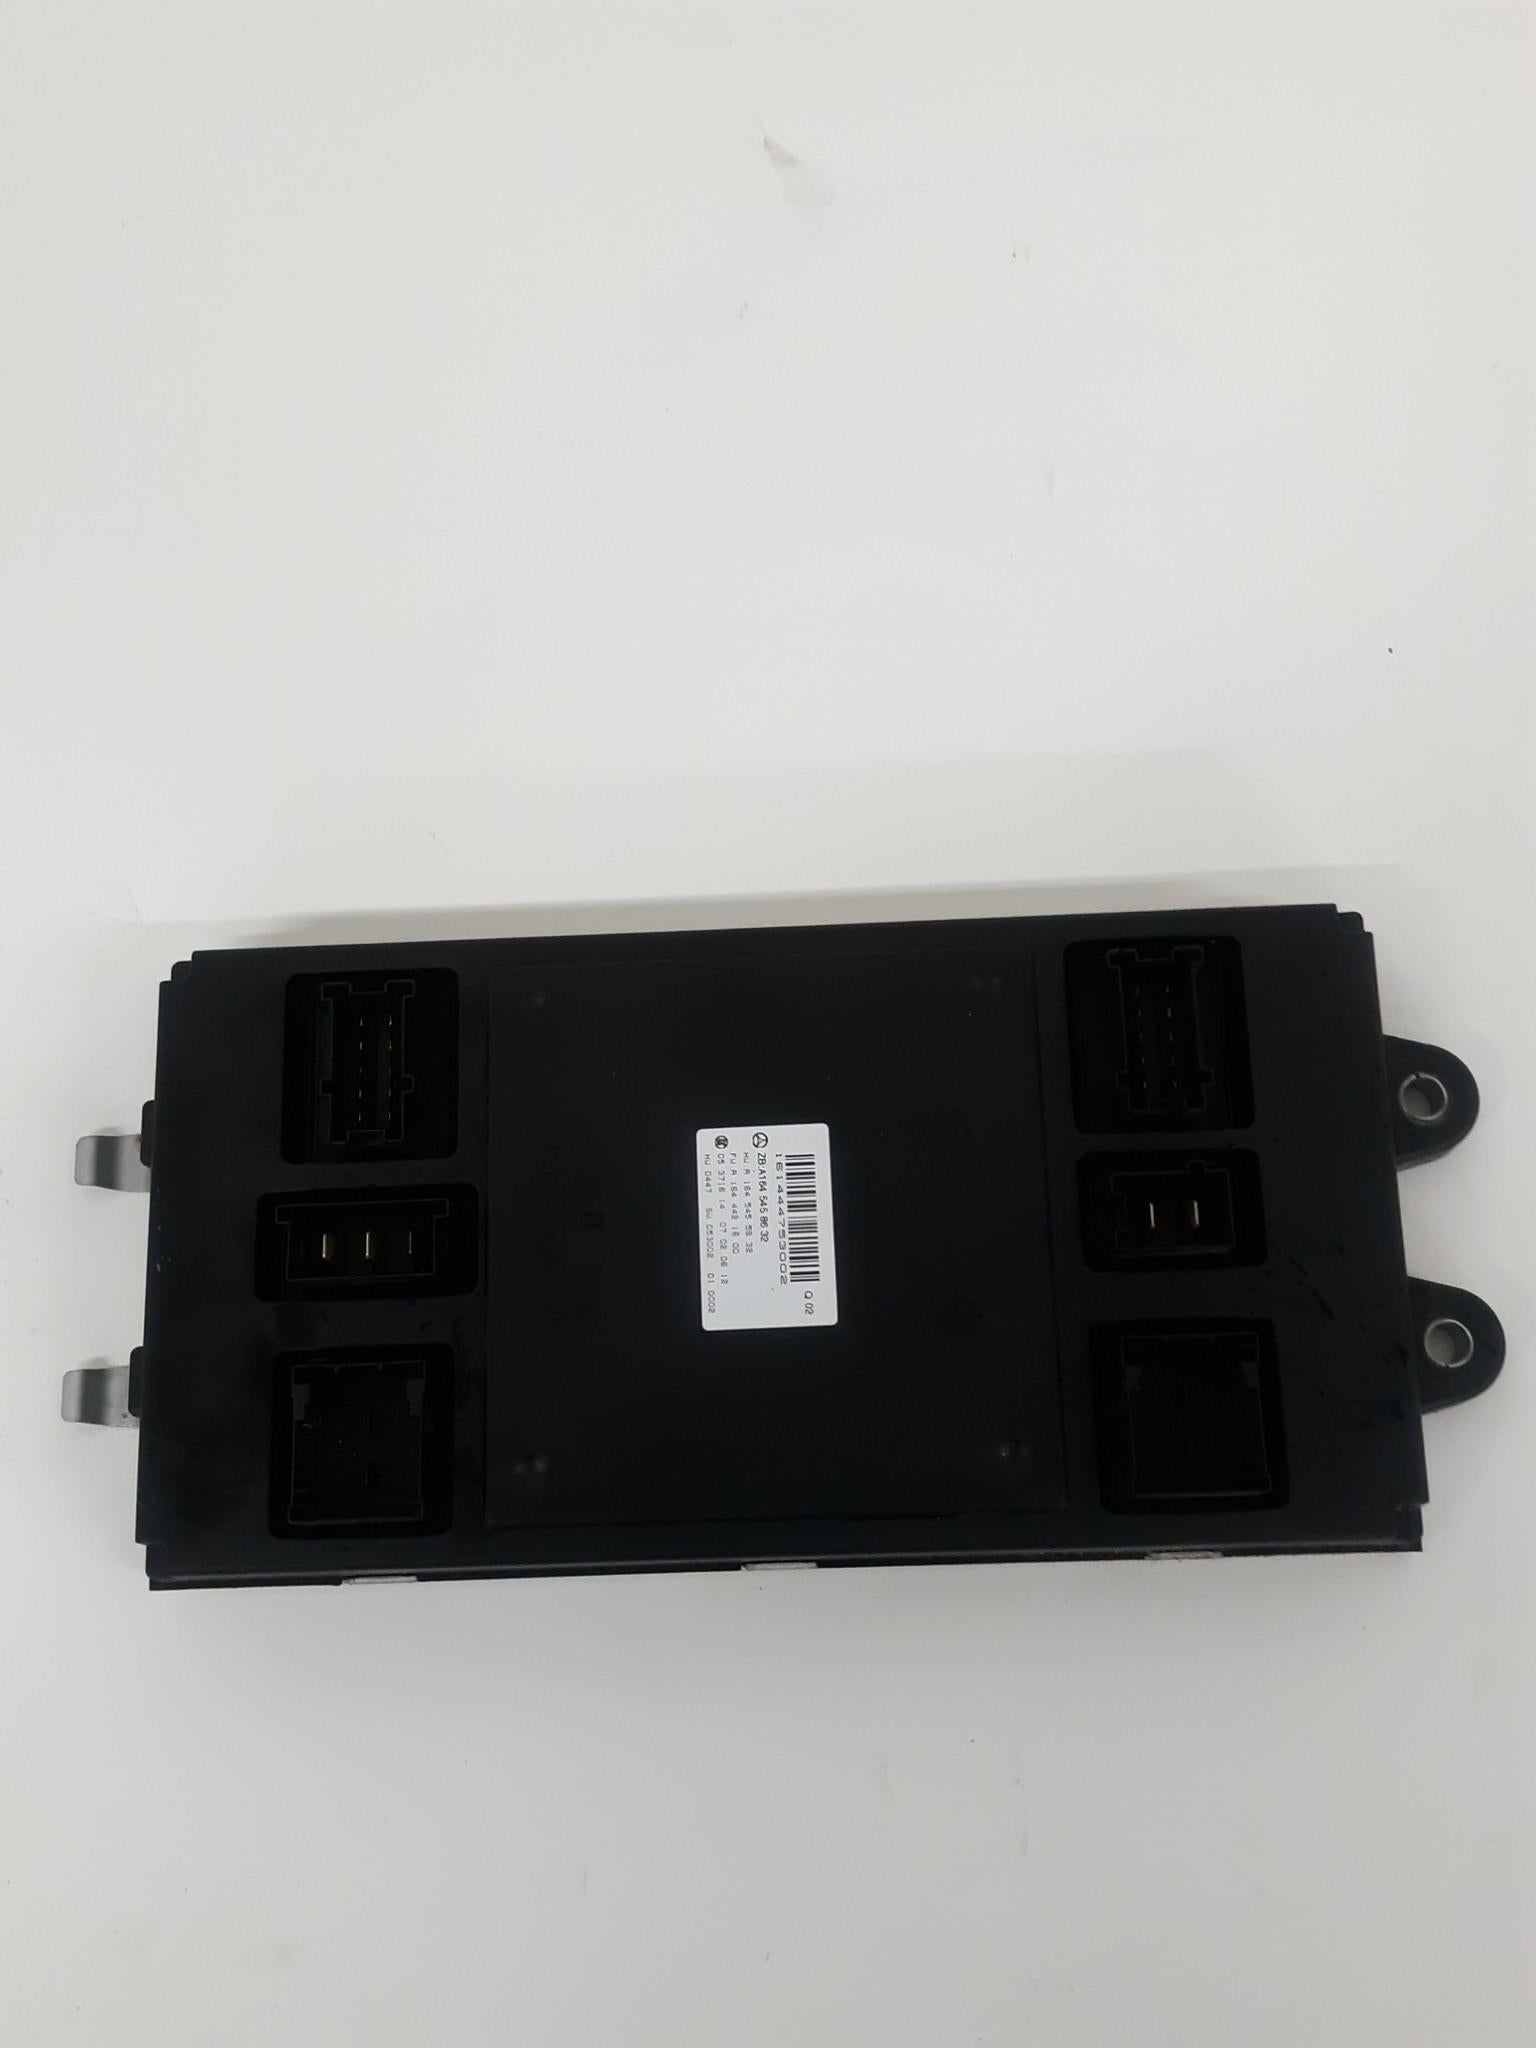 06-07 MERCEDES BENZ R350 ML350 ML63 FRONT SAM FUSE BOX RELAY CONTROL MODULE OEM - Click Receive Auto Parts